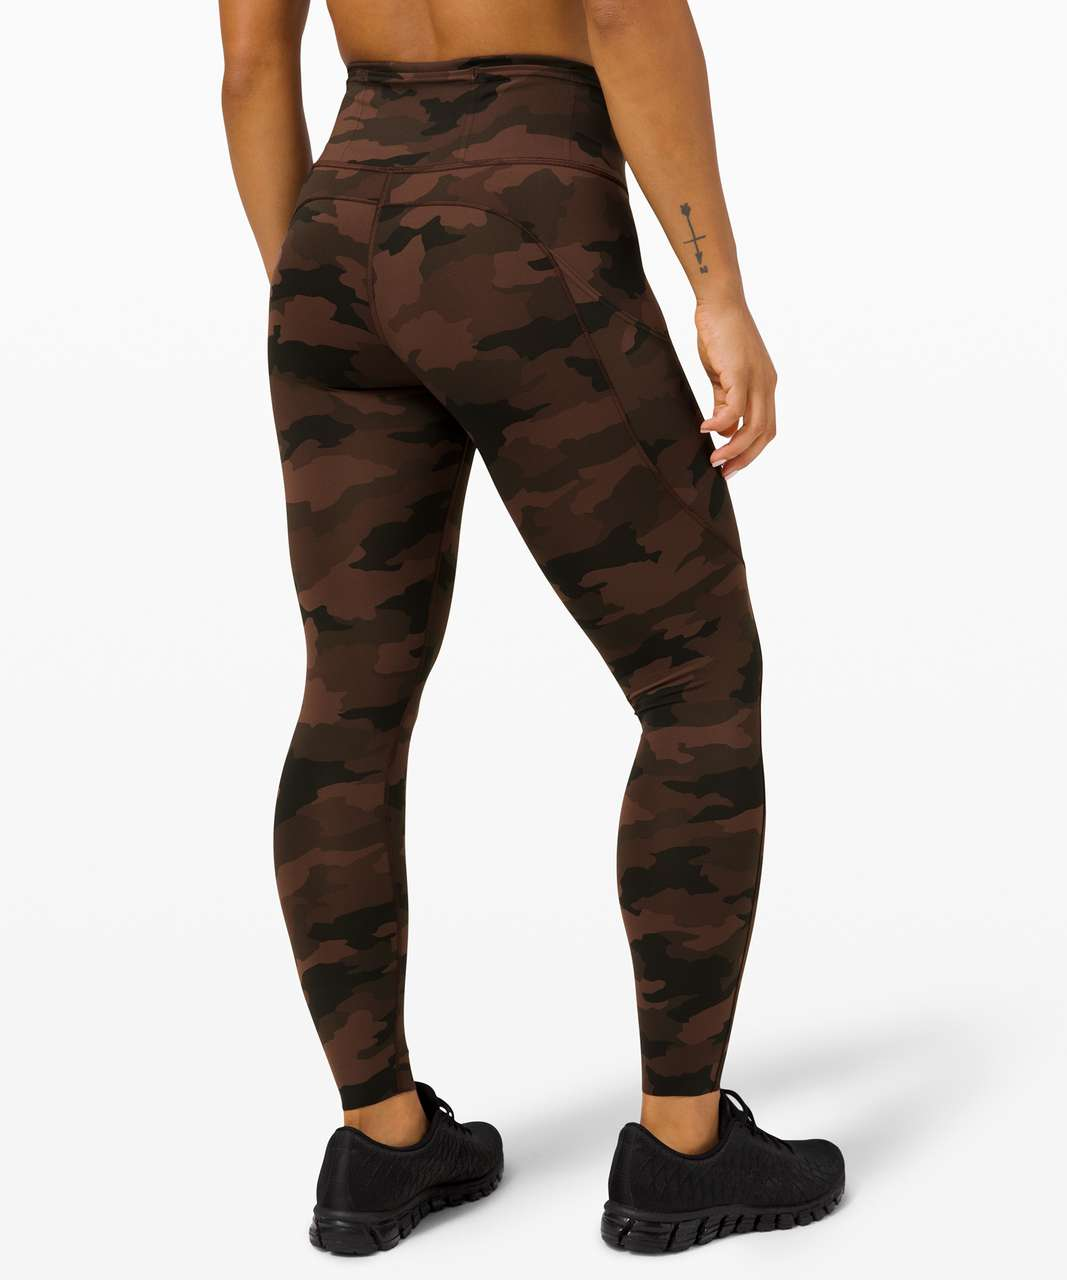 "Lululemon Fast and Free Tight II 25"" *Non-Reflective Nulux - Heritage 365 Camo Brown Earth Multi"